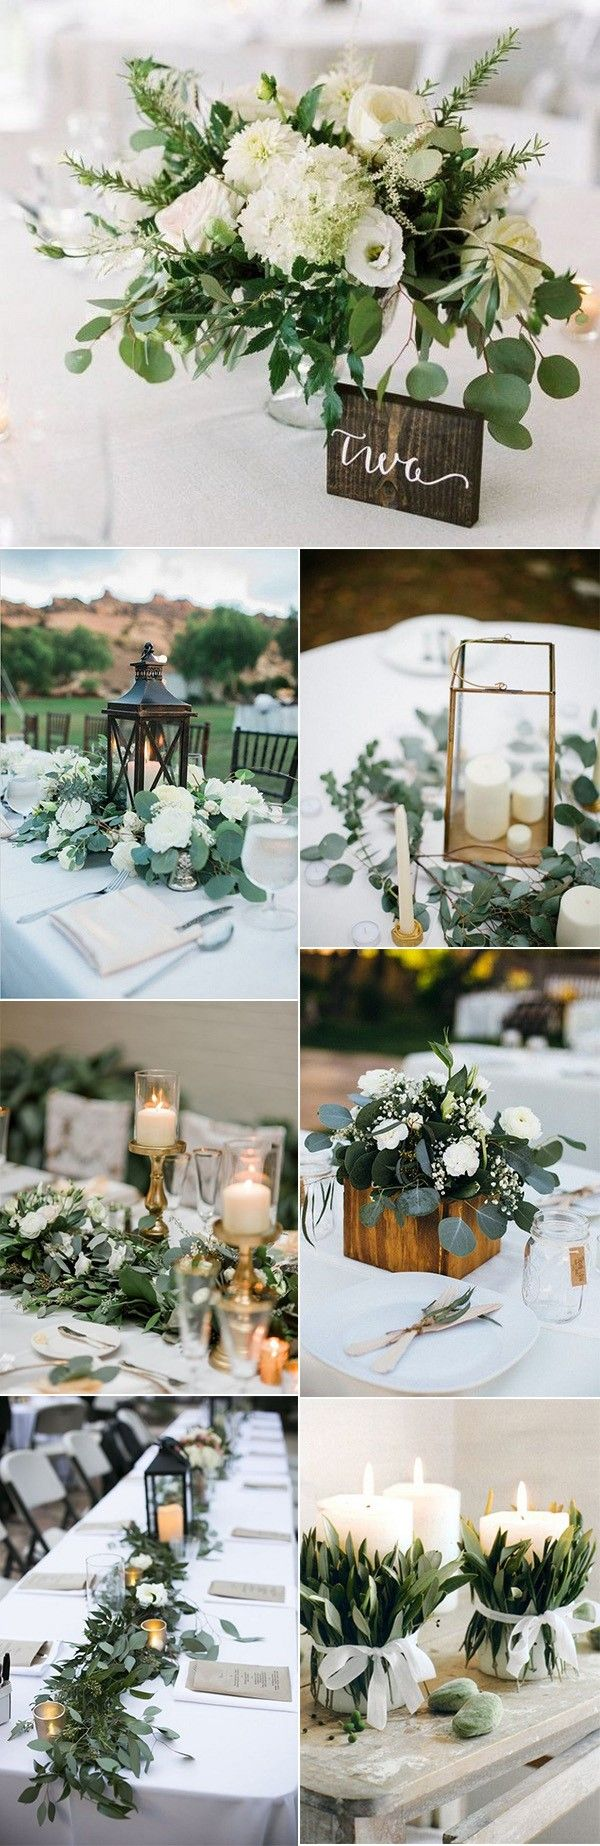 trending white and greenery chic wedding centerpieces #weddingtrends #weddingideas #weddingdecor #weddingcenterpiece #greenerywedding